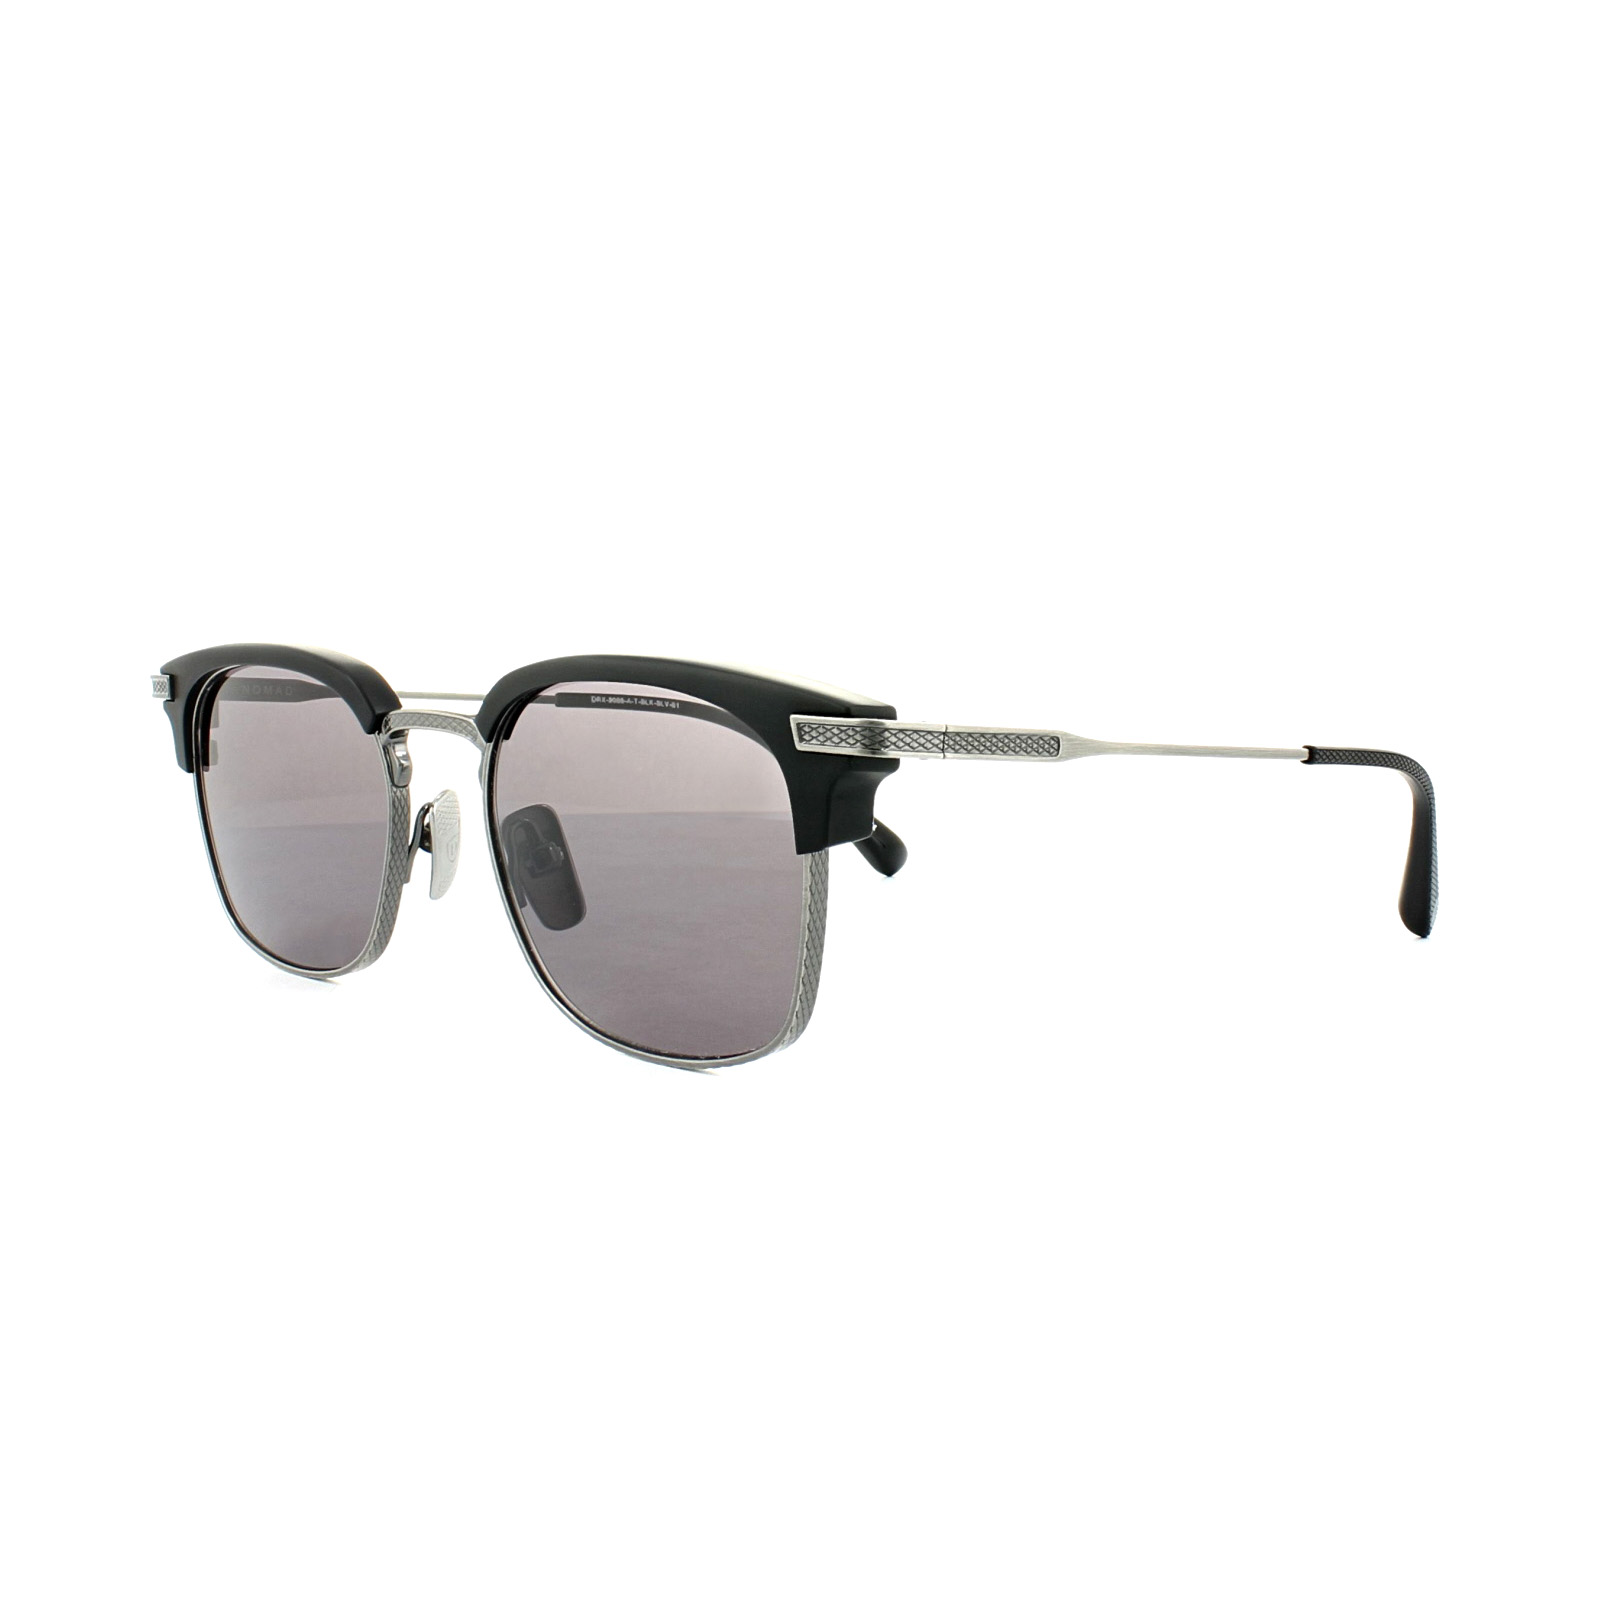 Cheap Dita Nomad Sunglasses - Discounted Sunglasses